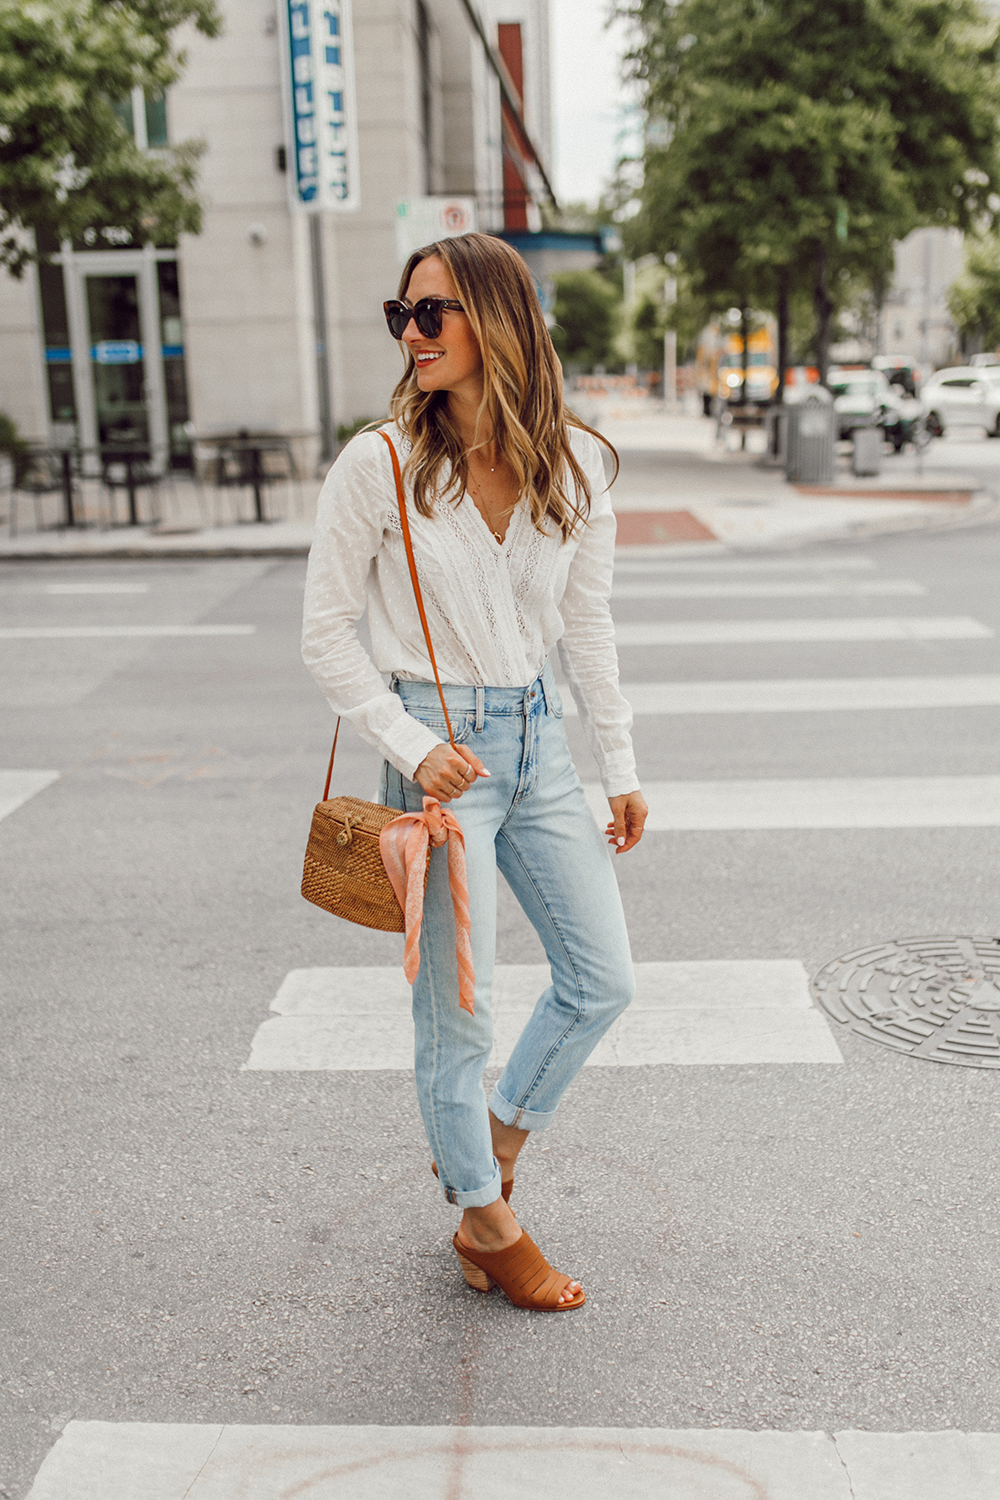 livvland-blog-olivia-watson-austin-texas-fashion-lifestyle-blogger-sezane-lace-deep-v-top-rattan-bag-madewell-summer-jeans-9